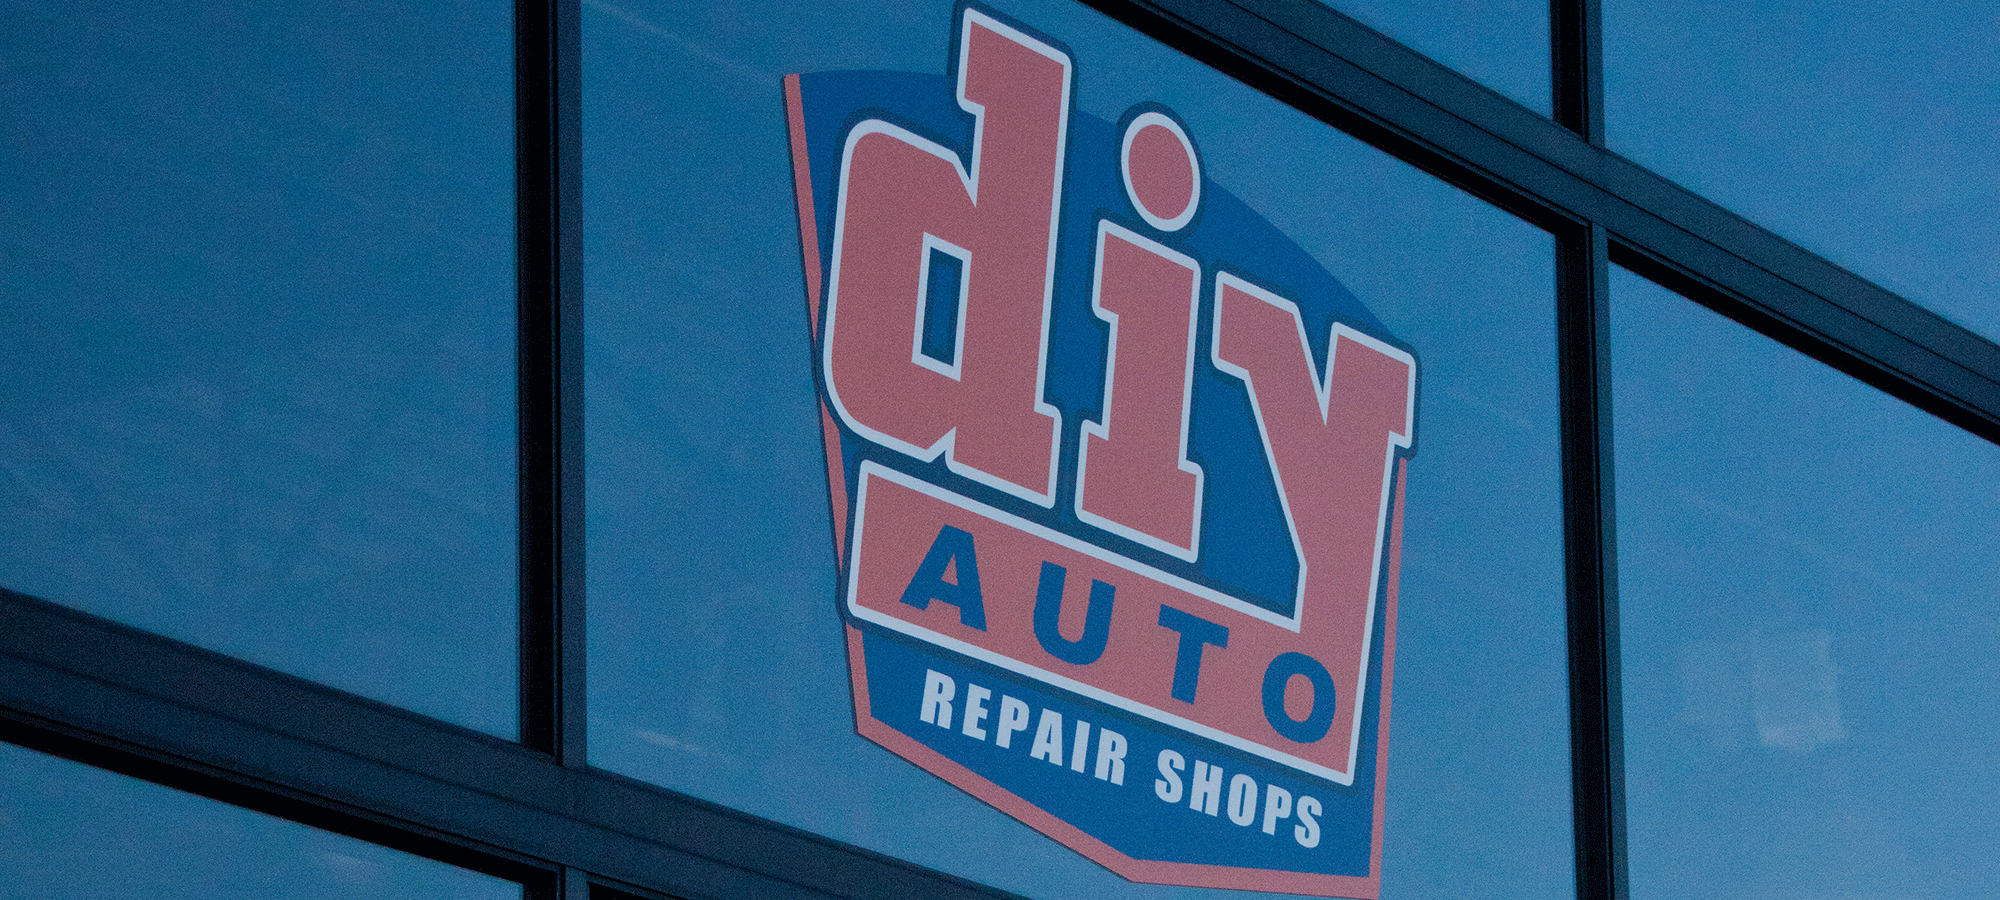 Diy auto repair shops equipped self service garage bays save even more money solutioingenieria Choice Image